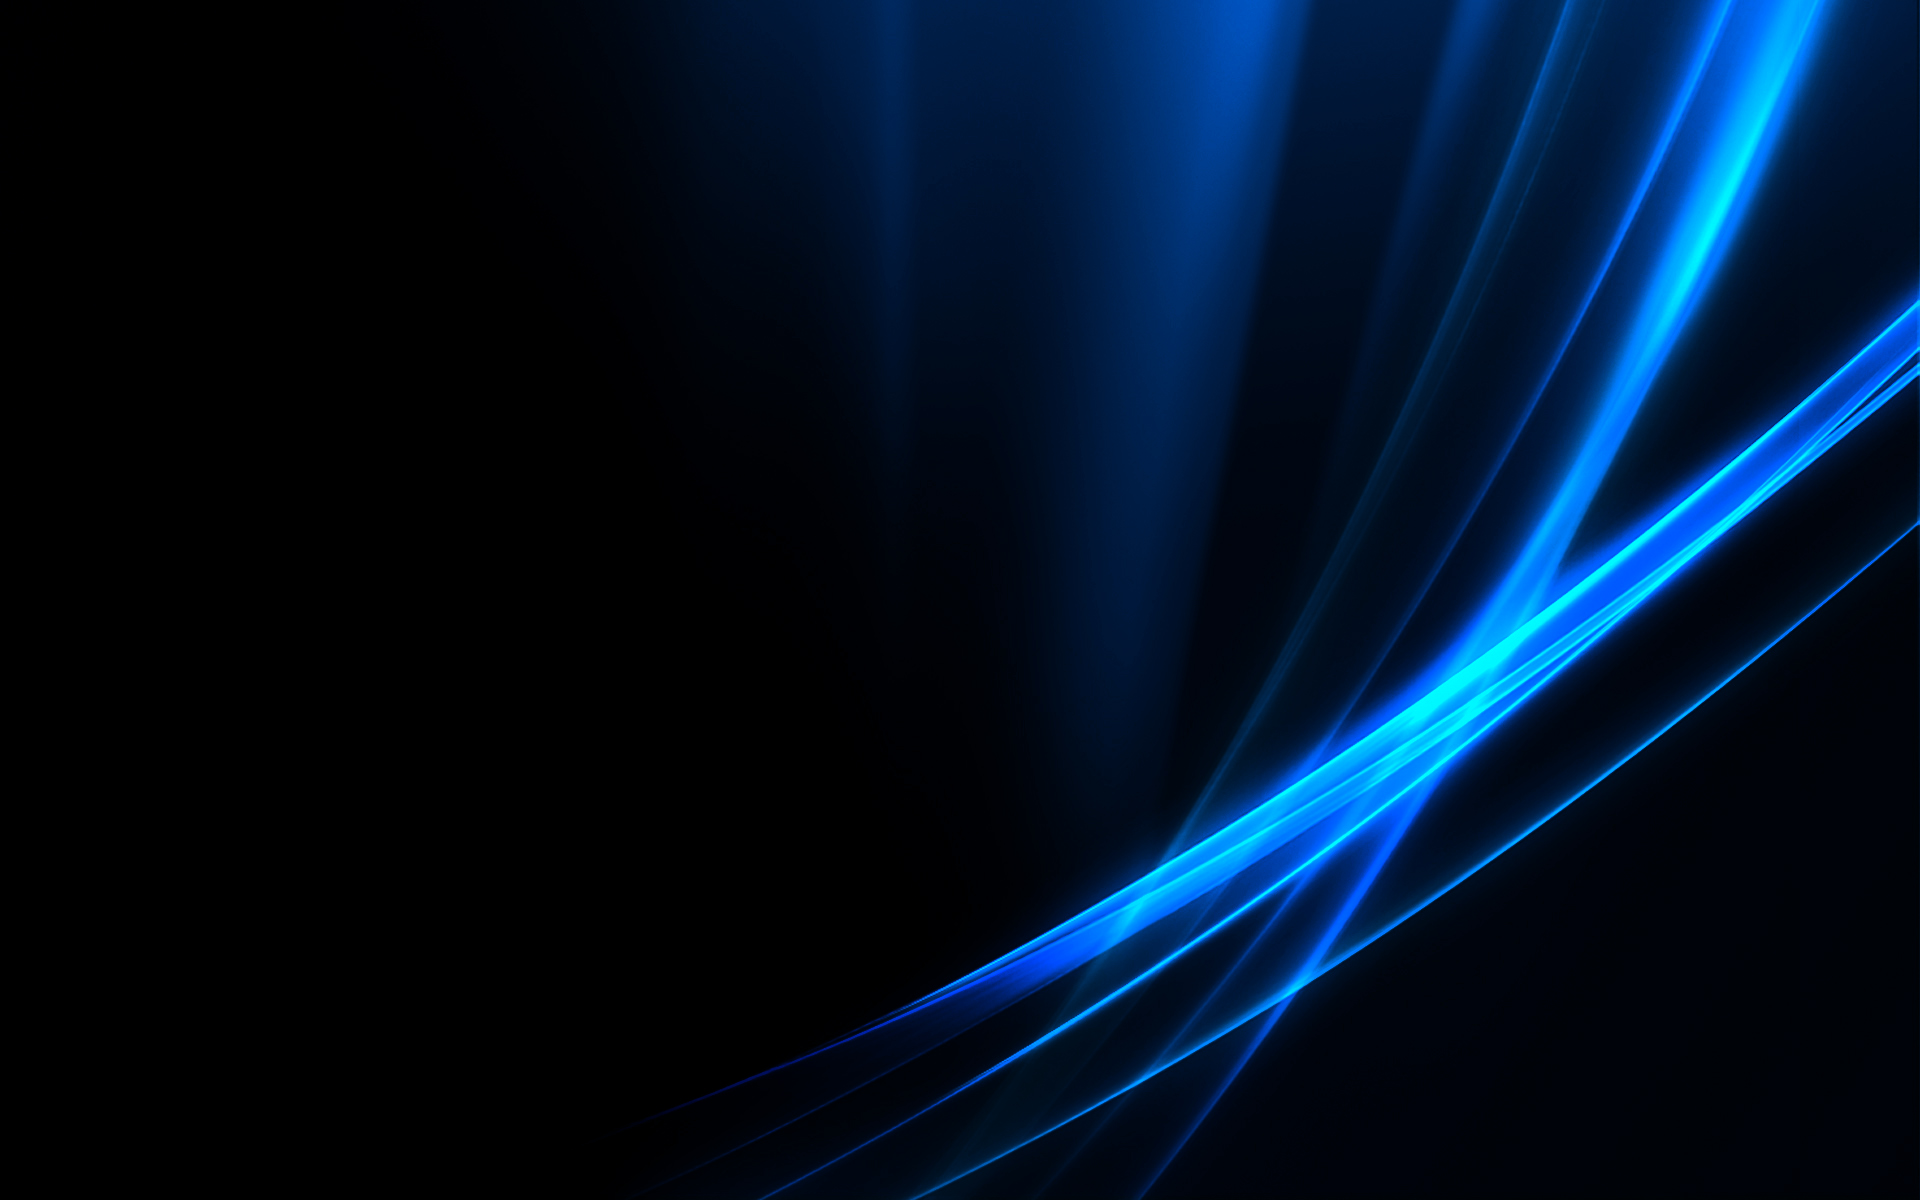 Blue Abstract Background Powerpoint Backgrounds For Free Powerpoint Templates